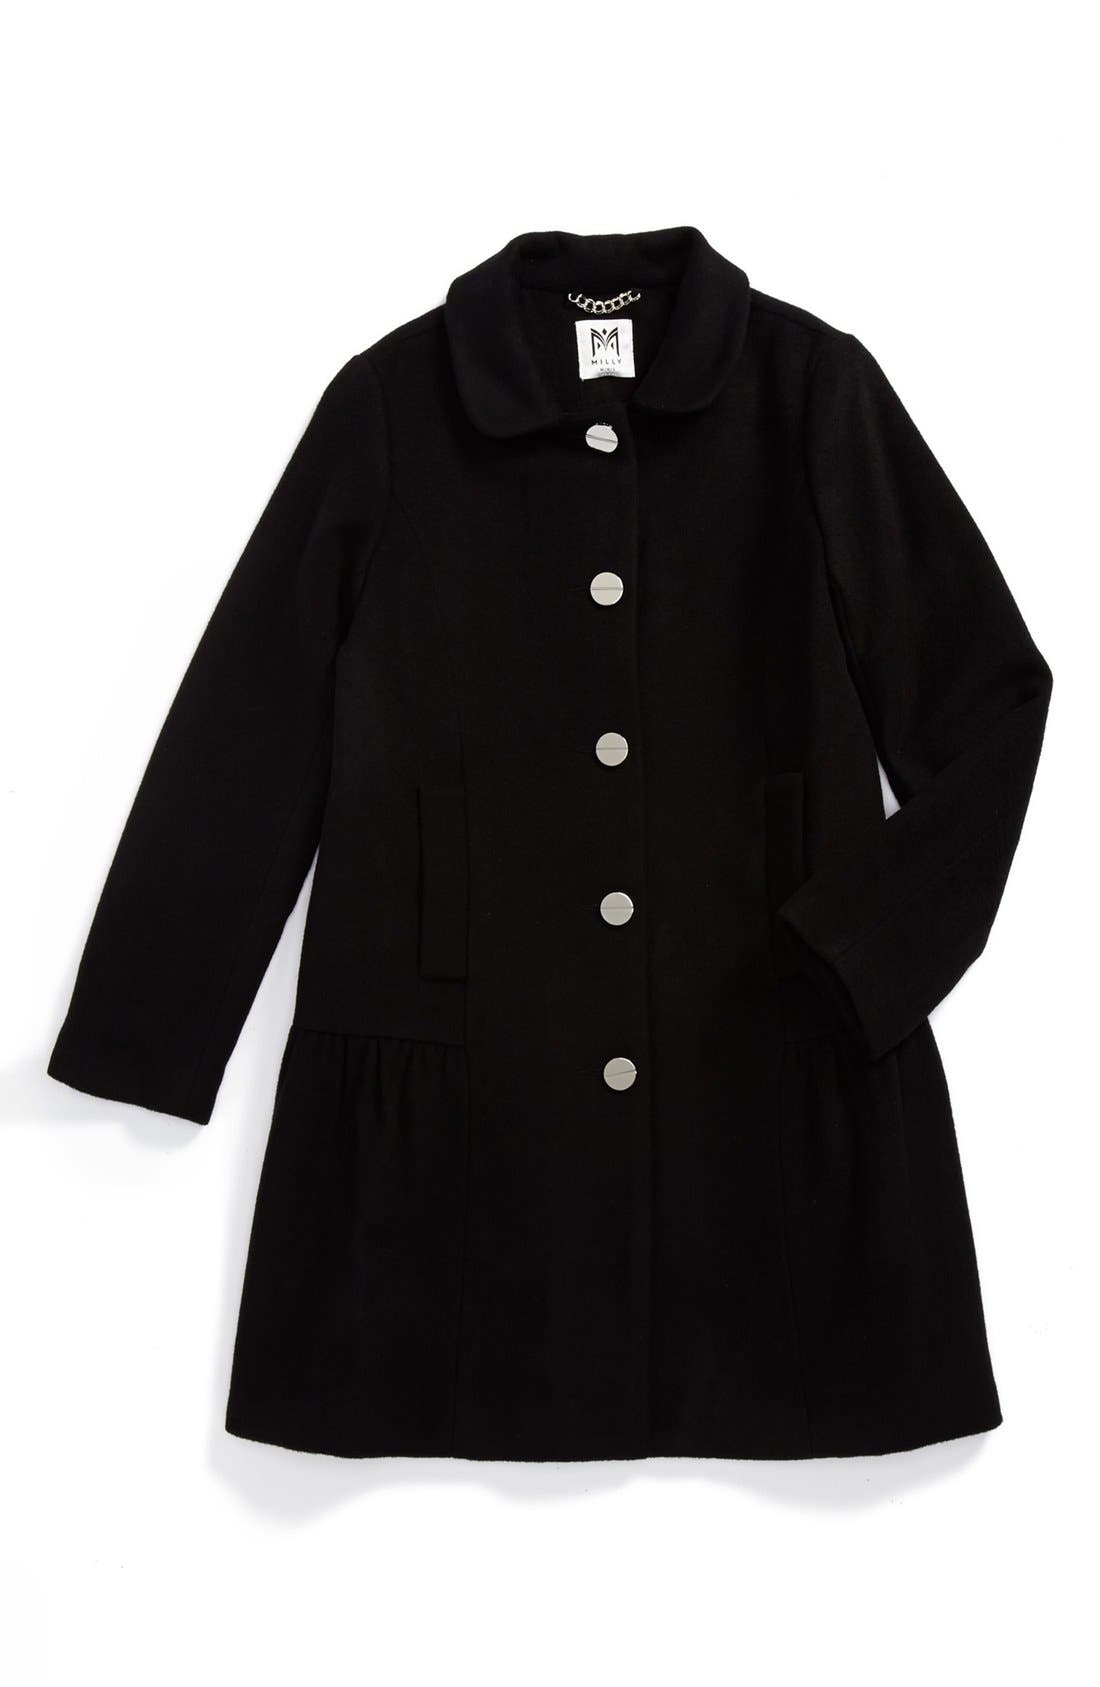 Alternate Image 1 Selected - Milly Minis 'Zoey' Peplum Coat (Big Girls)